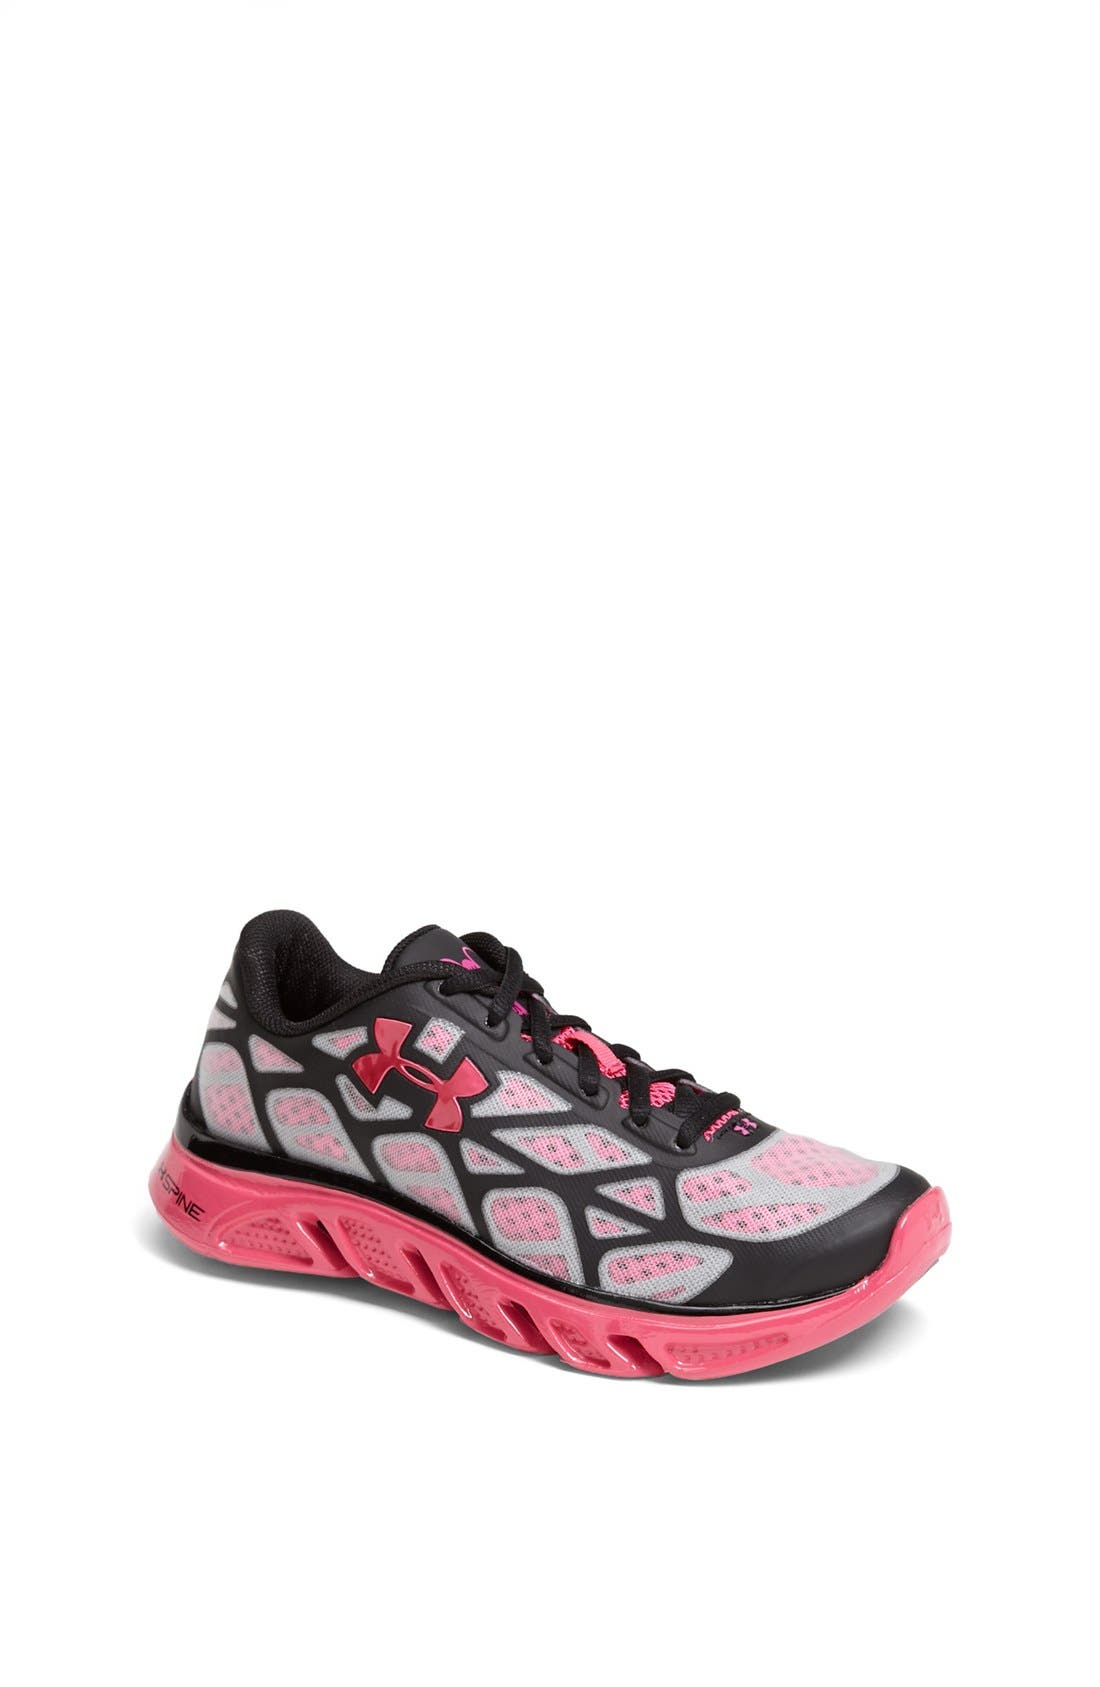 Alternate Image 1 Selected - Under Armour 'Spine™ Vice Breast Cancer Awareness' Athletic Shoe (Big Kid)